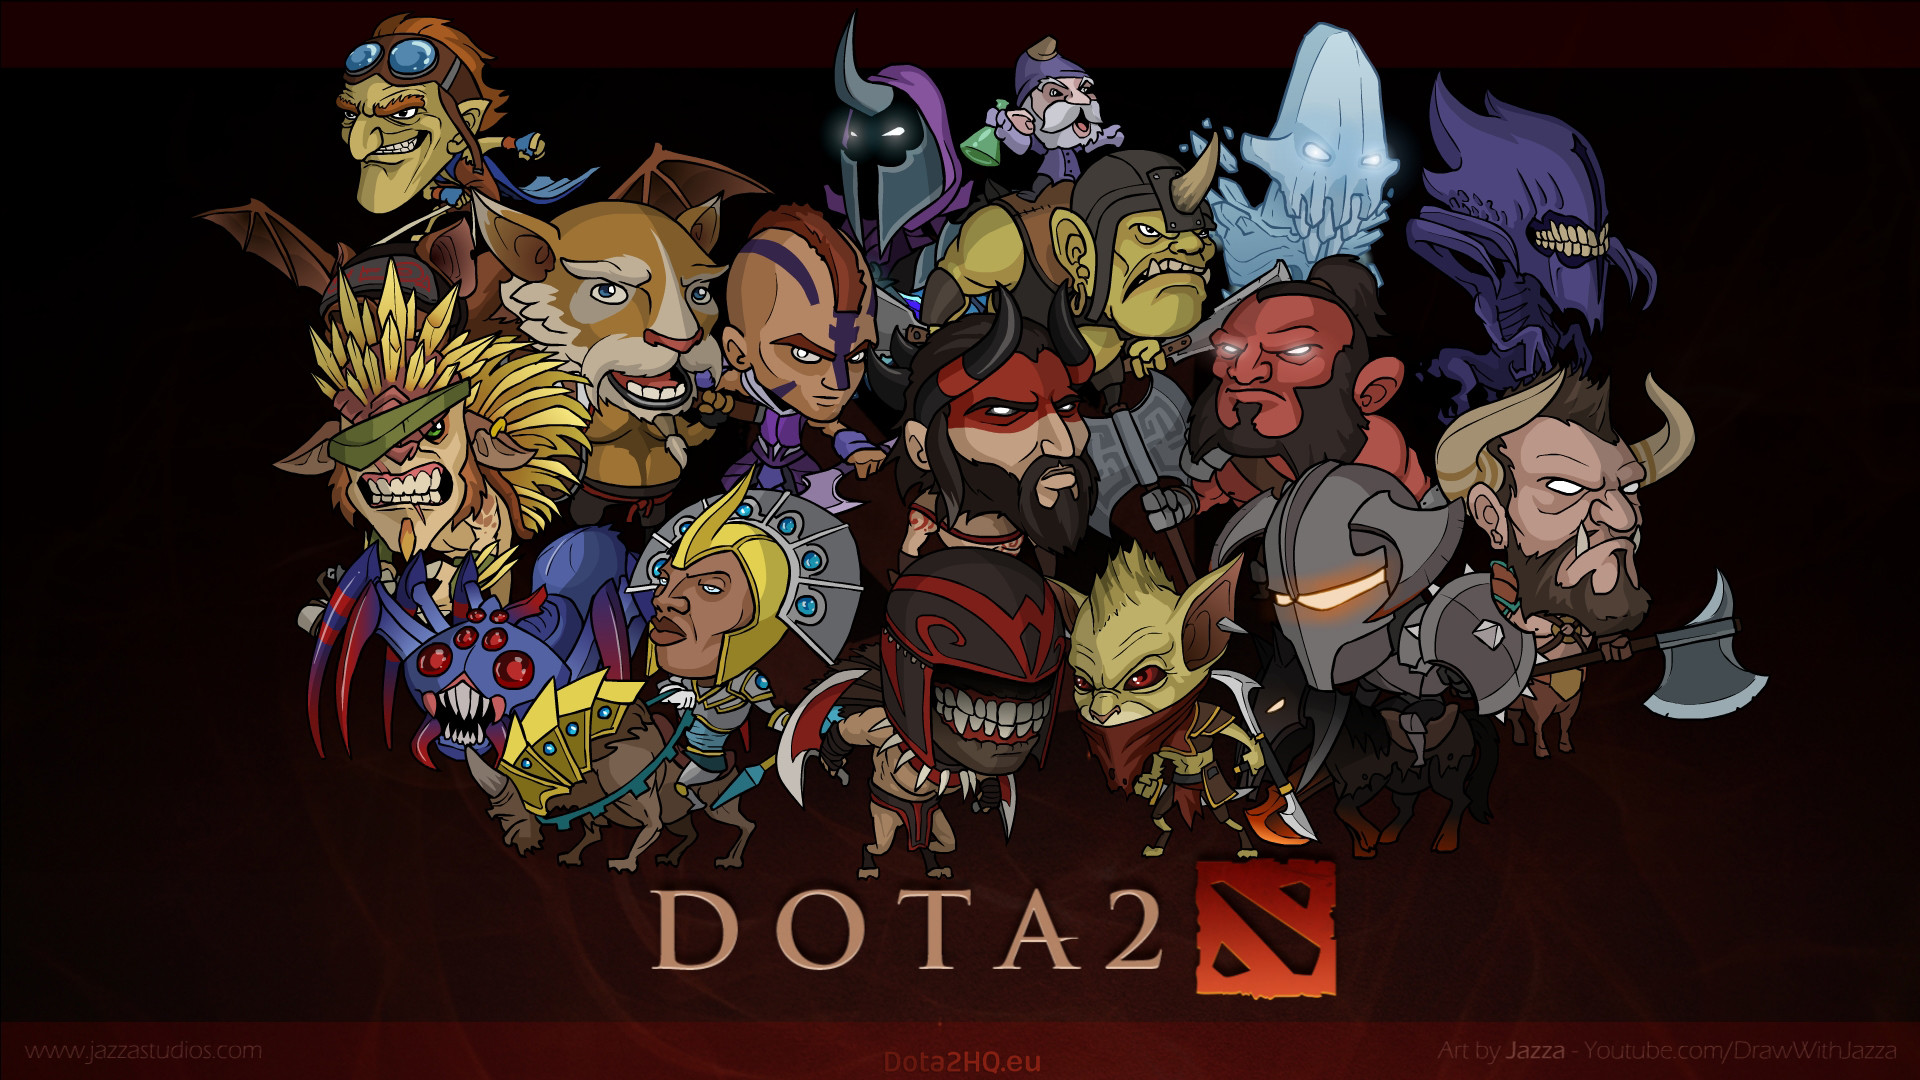 Full HD 1080p Dota 2 Wallpapers HD, Desktop Backgrounds 1920×1080, Images  and Pictures